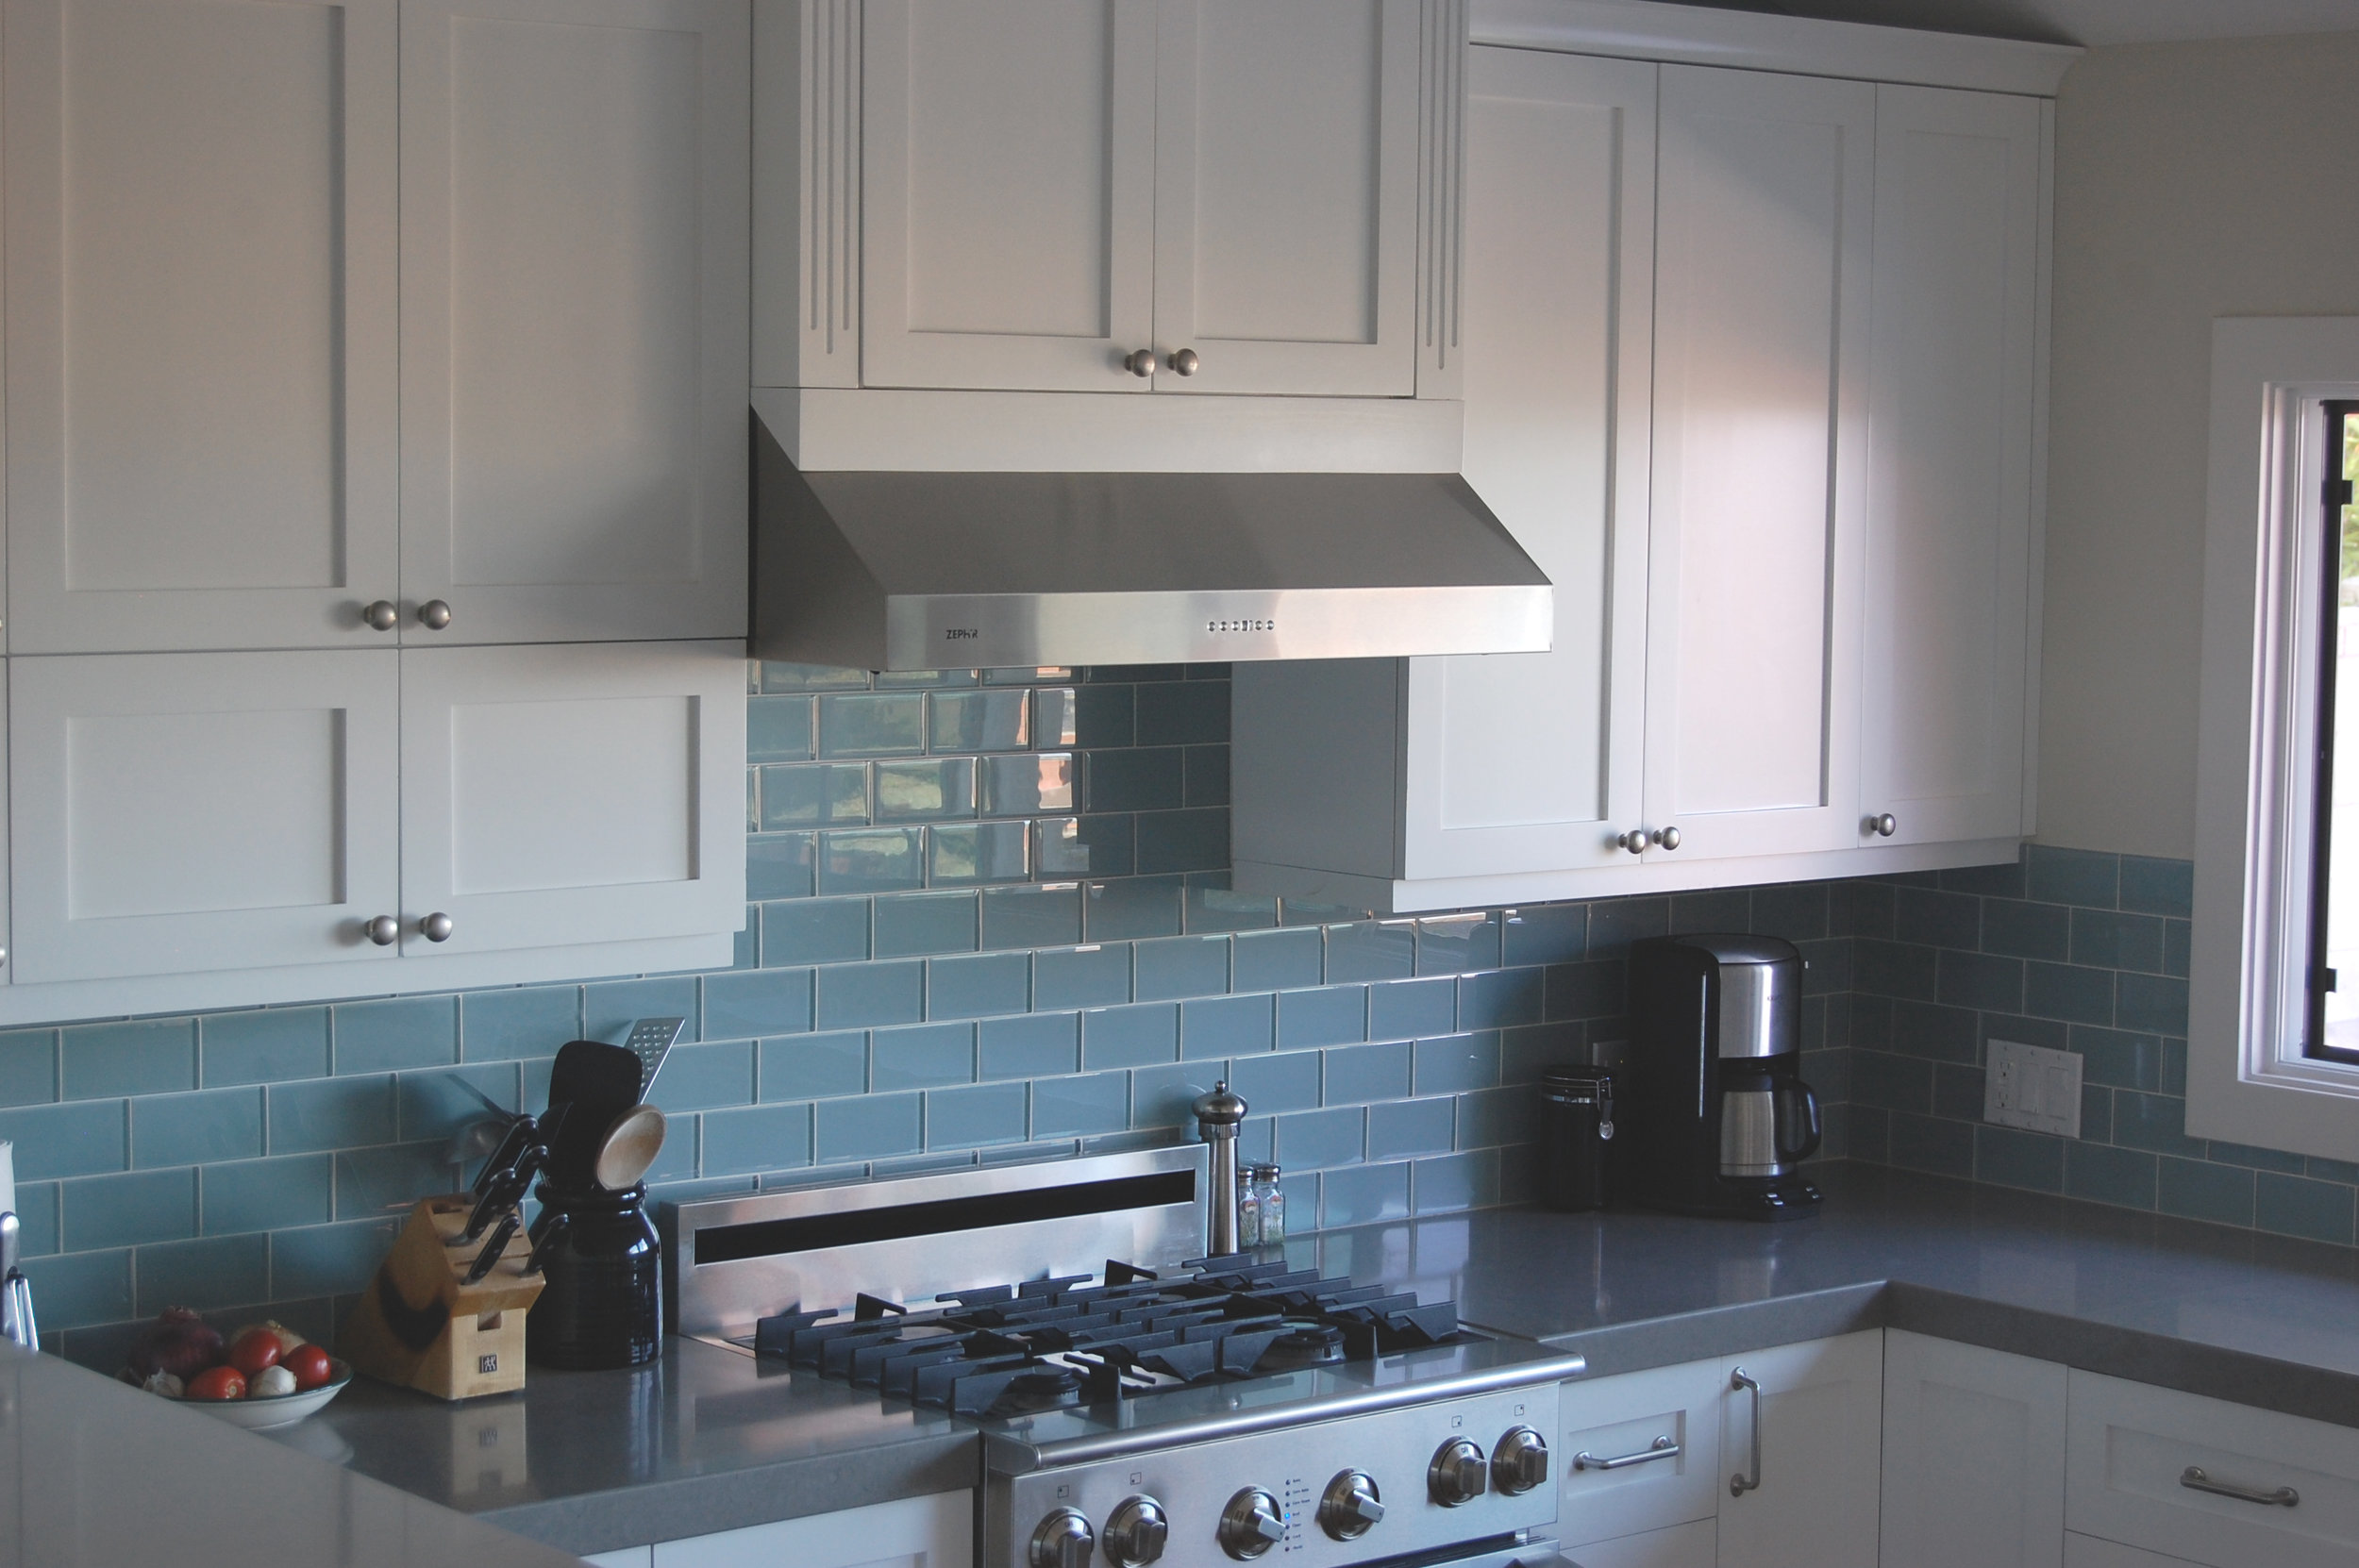 Kitchen Backsplash: Style Options and Ideas — Core Group Realty